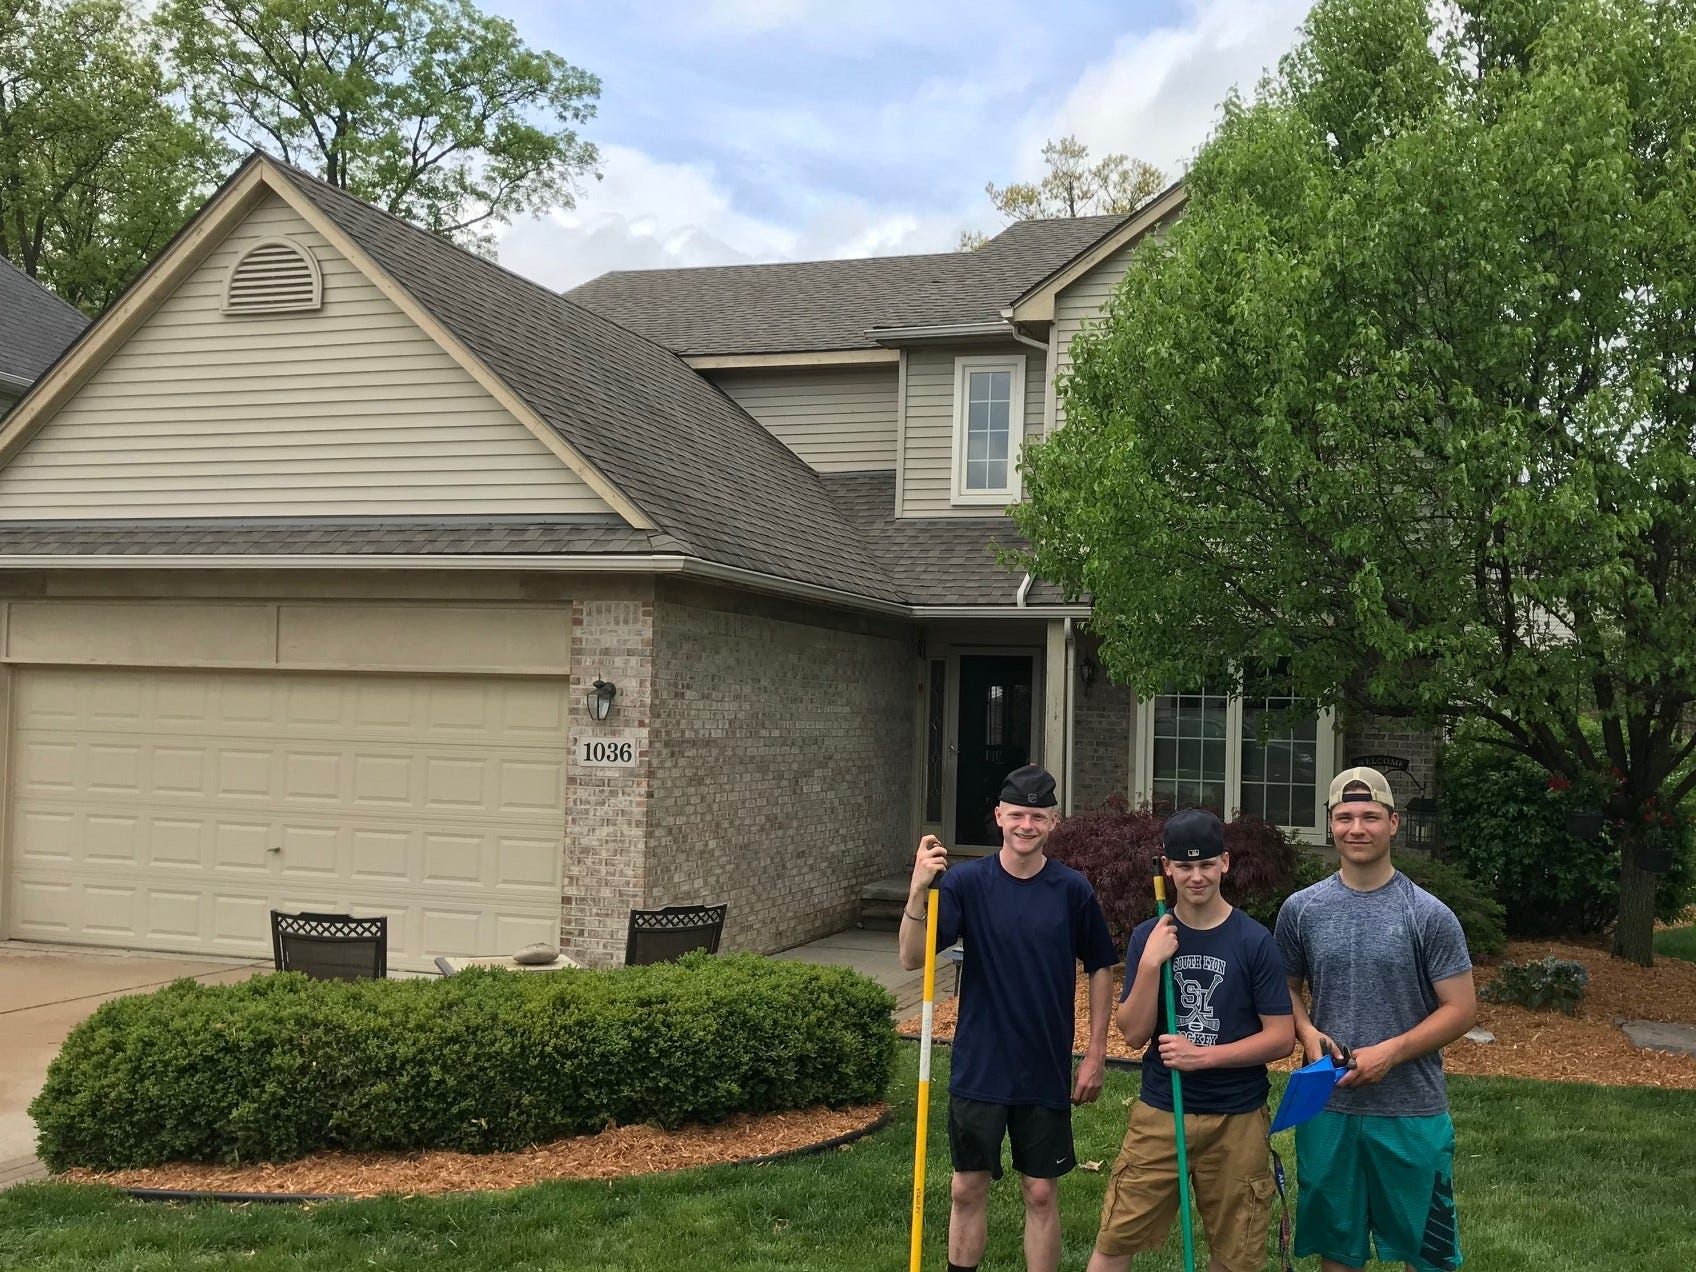 Members of the South Lyon Unified hockey team spent last spring selling and installing mulch around the community in a fund-raising effort to help defray costs of their renovated locker room at the Kensington Valley Ice House.